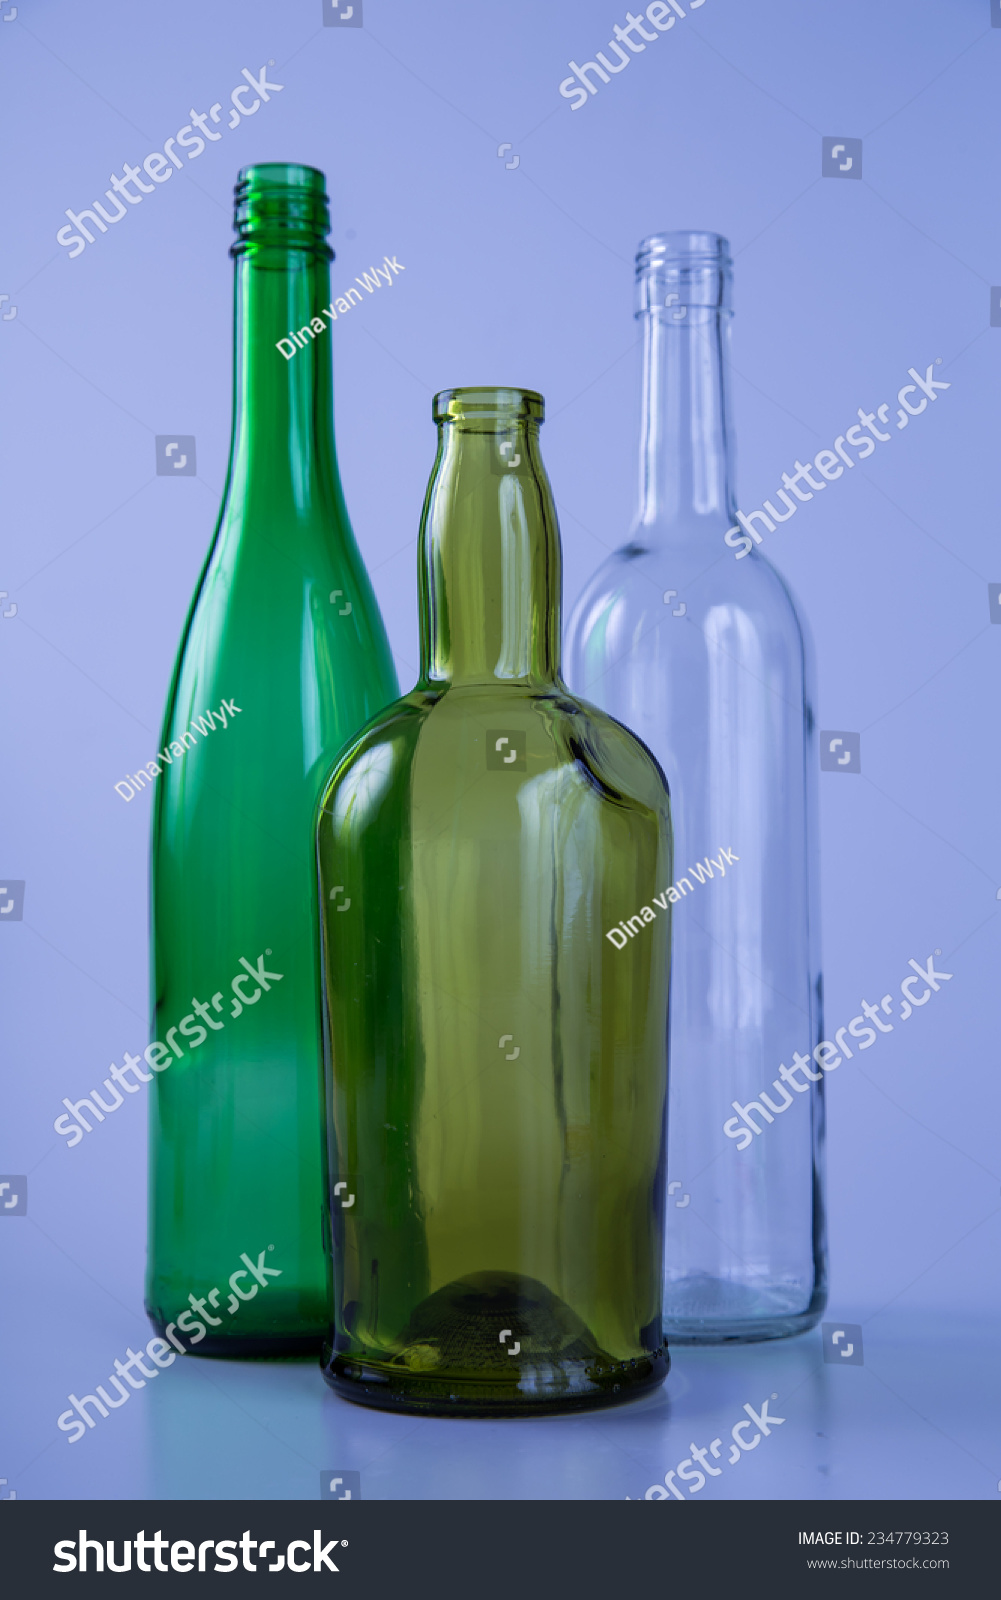 Tree Colored Glass Bottles Colored Back Stock Photo (Royalty Free ...